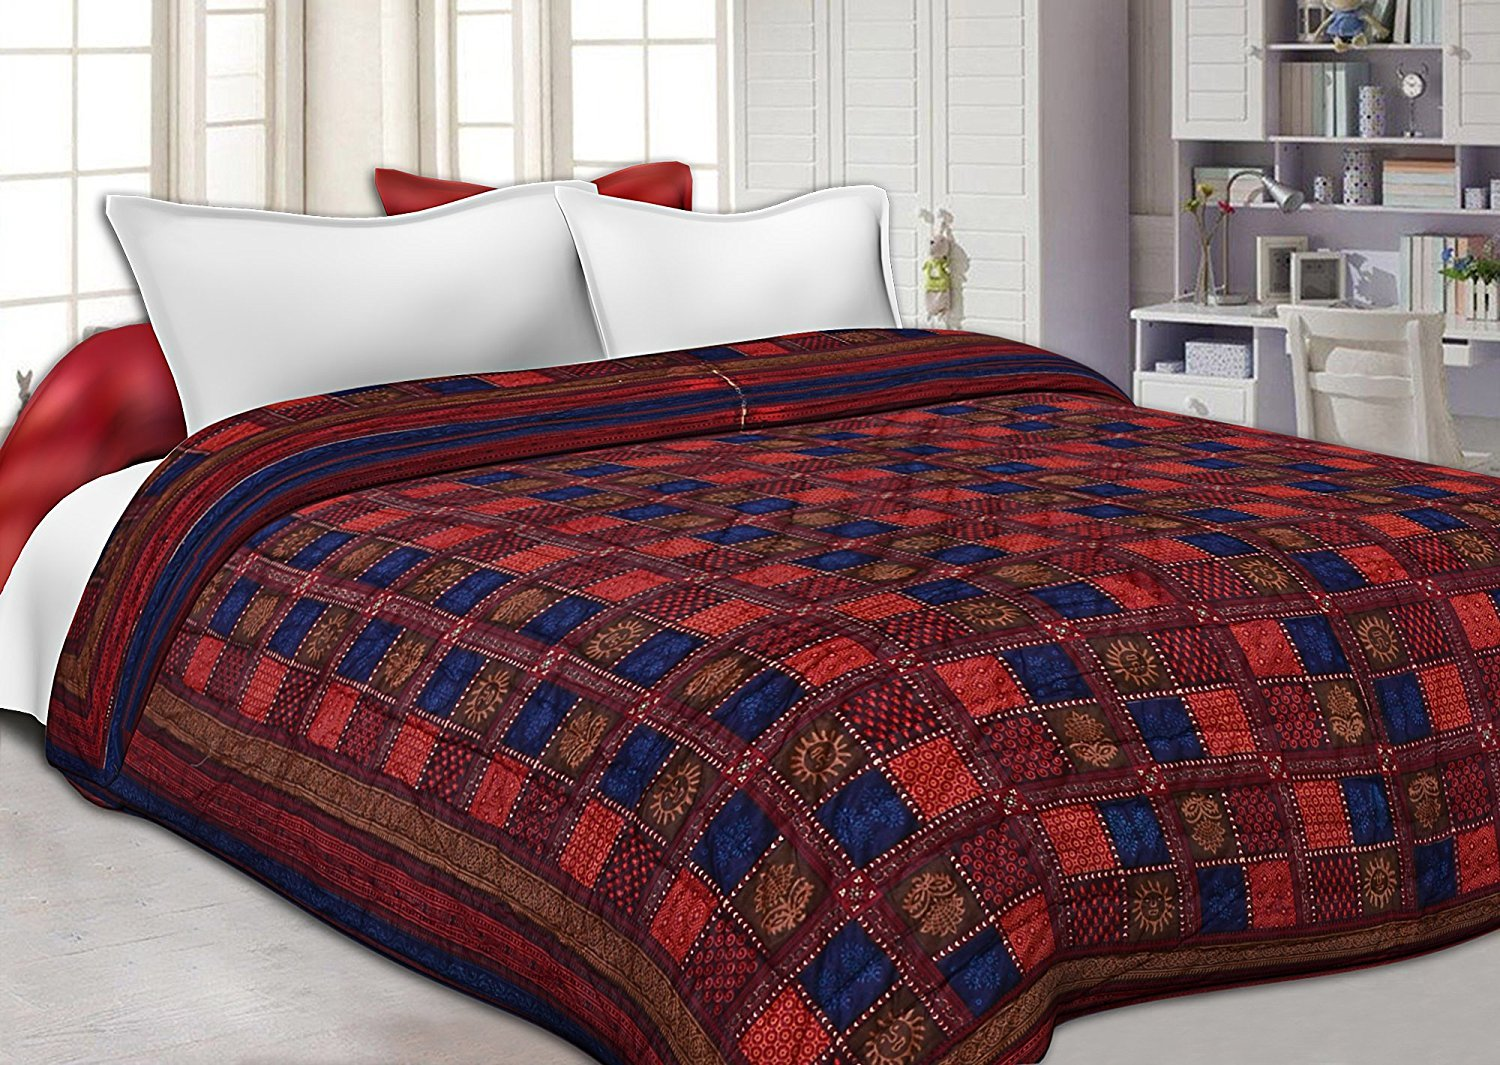 Amazing Buy Famacart Double Bed Size Jaipuri Pure Cotton AC Quilt Razai Printed  Winter Quilt Blanket (King Size) Online At Low Prices In India   Amazon.in